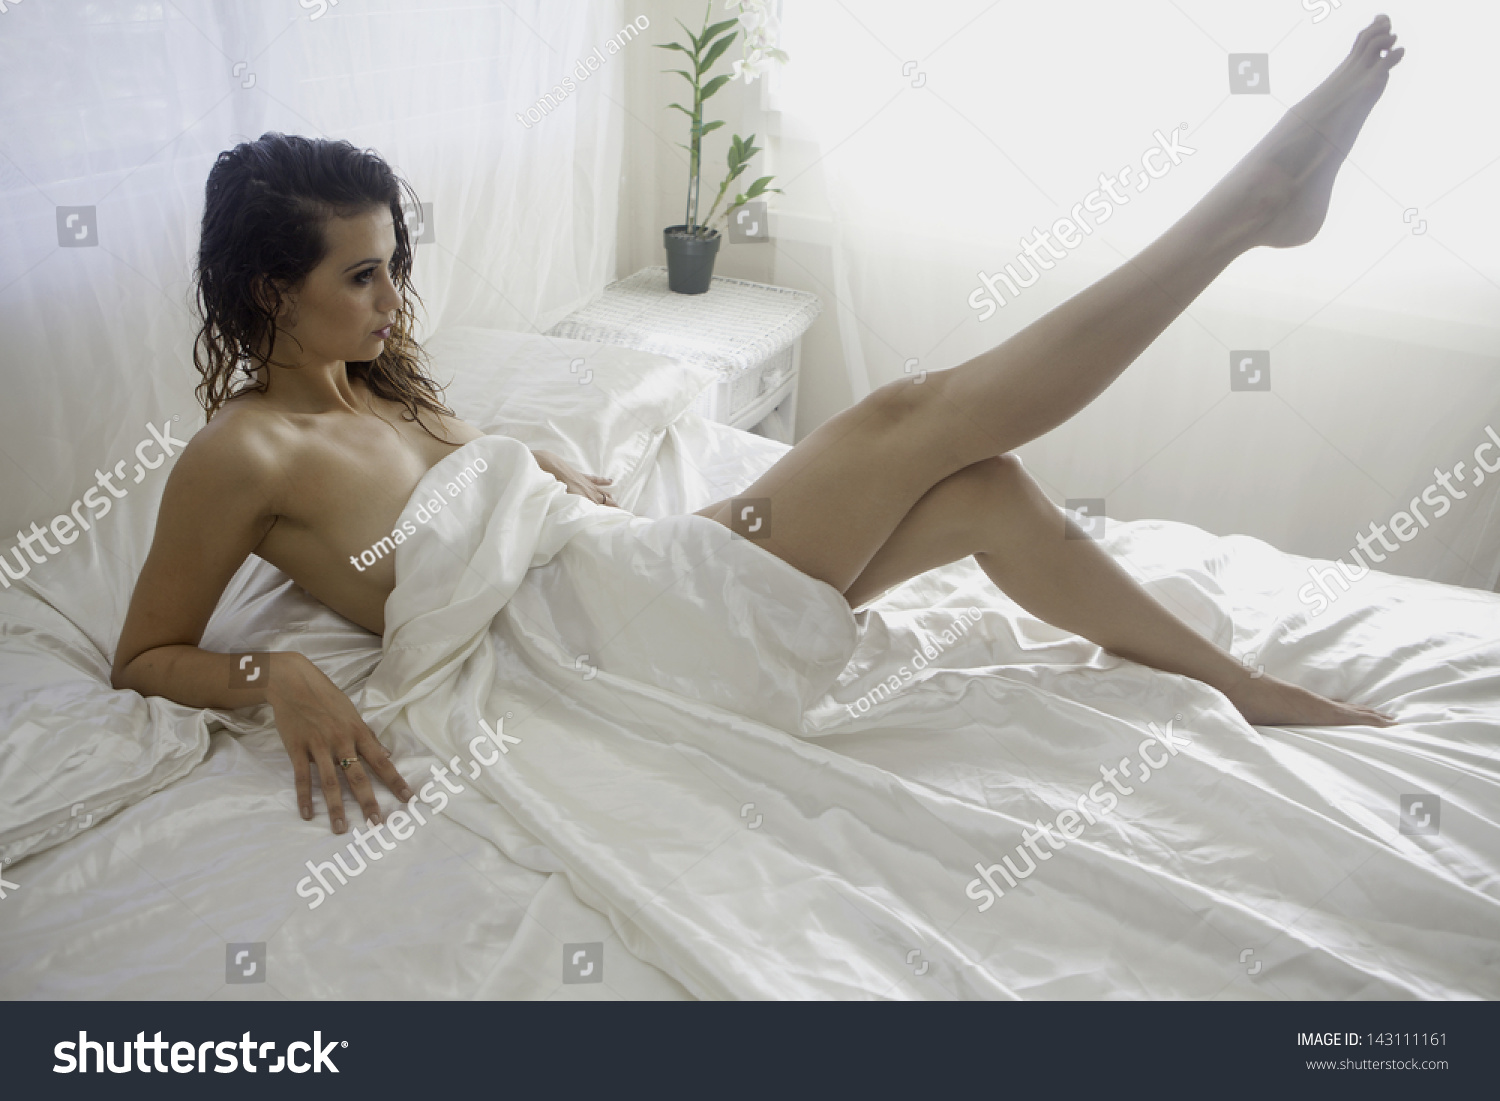 Amo Nudes beautiful nude girl on bed white stock photo (edit now